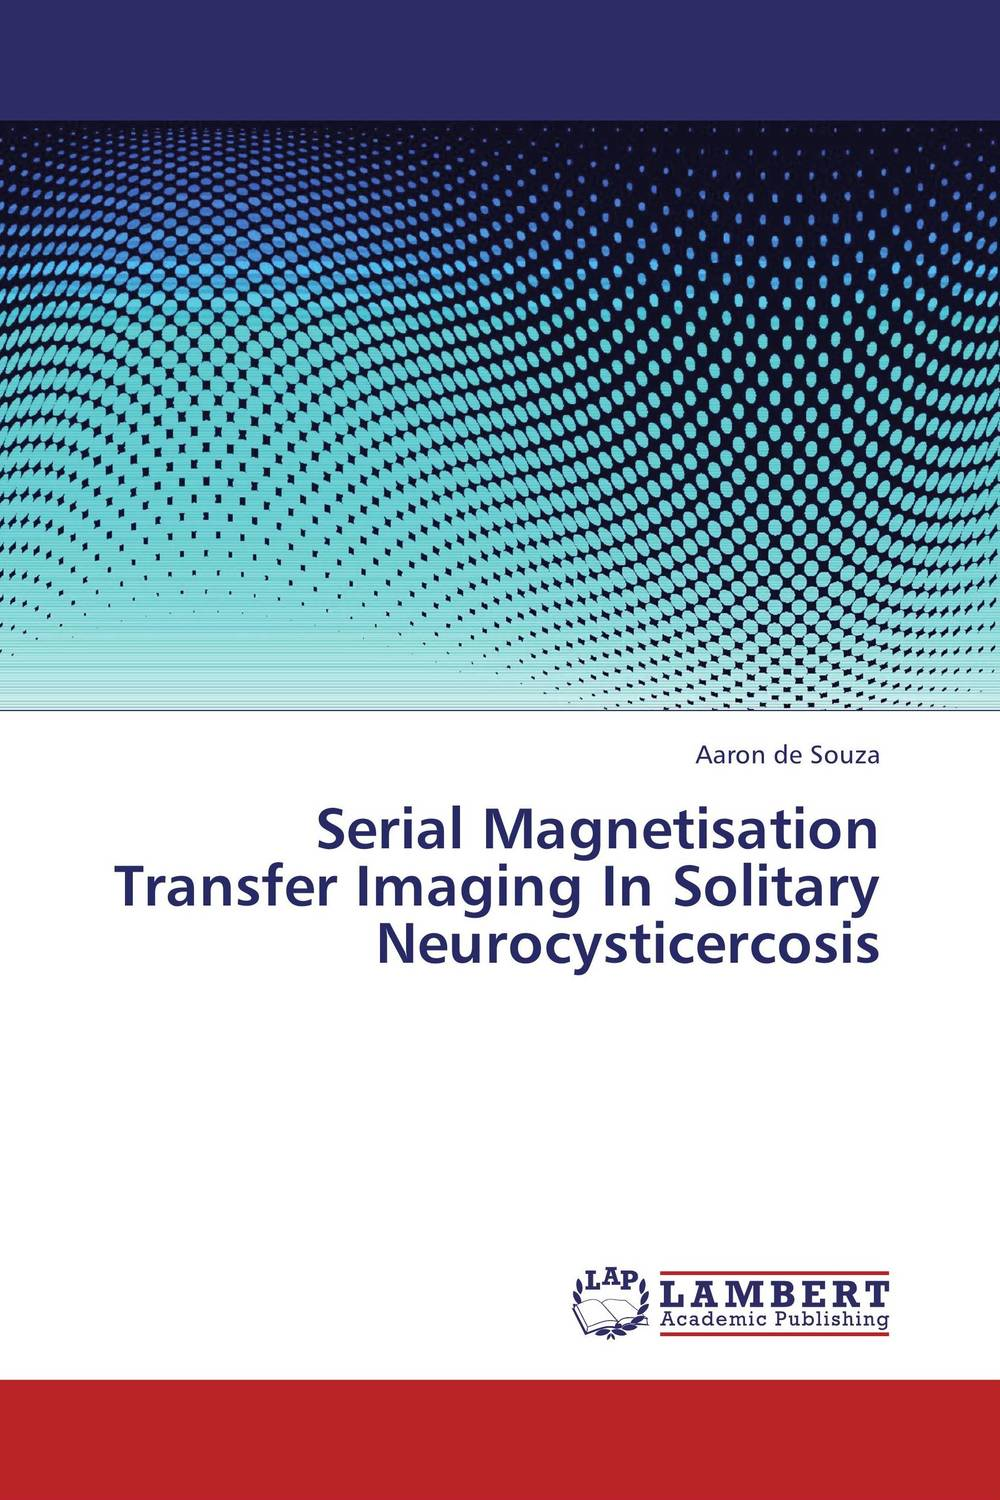 Serial Magnetisation Transfer Imaging In Solitary Neurocysticercosis moxibustion box querysystem cauterize moxa roll box utensils moxa tank